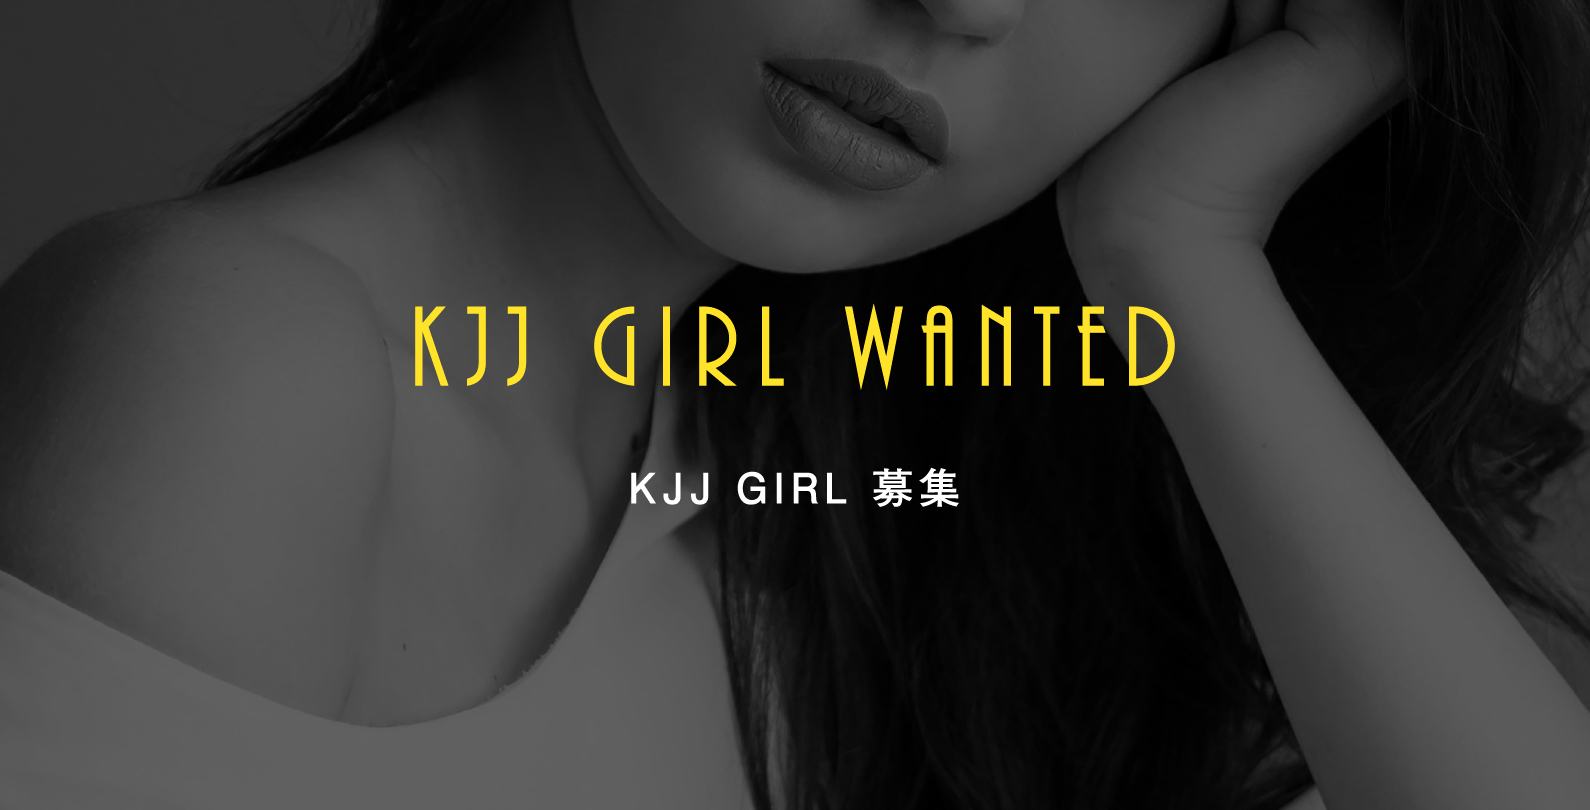 KJJ GIRL WANTED